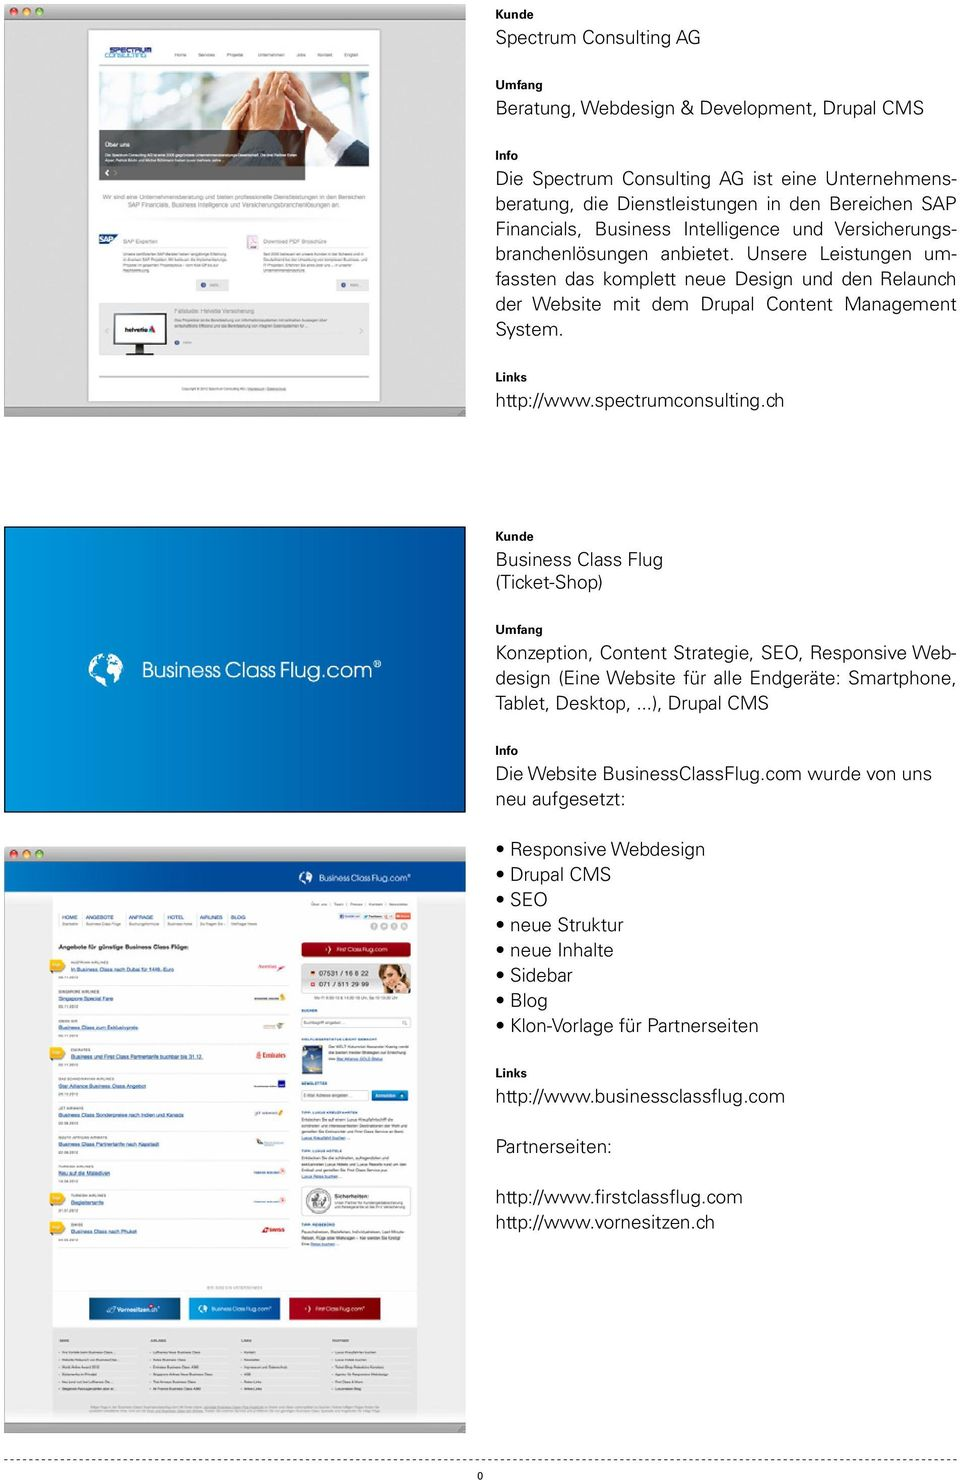 spectrumconsulting.ch Kunde Business Class Flug (Ticket-Shop) Konzeption, Content Strategie, SEO, Responsive Webdesign (Eine Website für alle Endgeräte: Smartphone, Tablet, Desktop,.